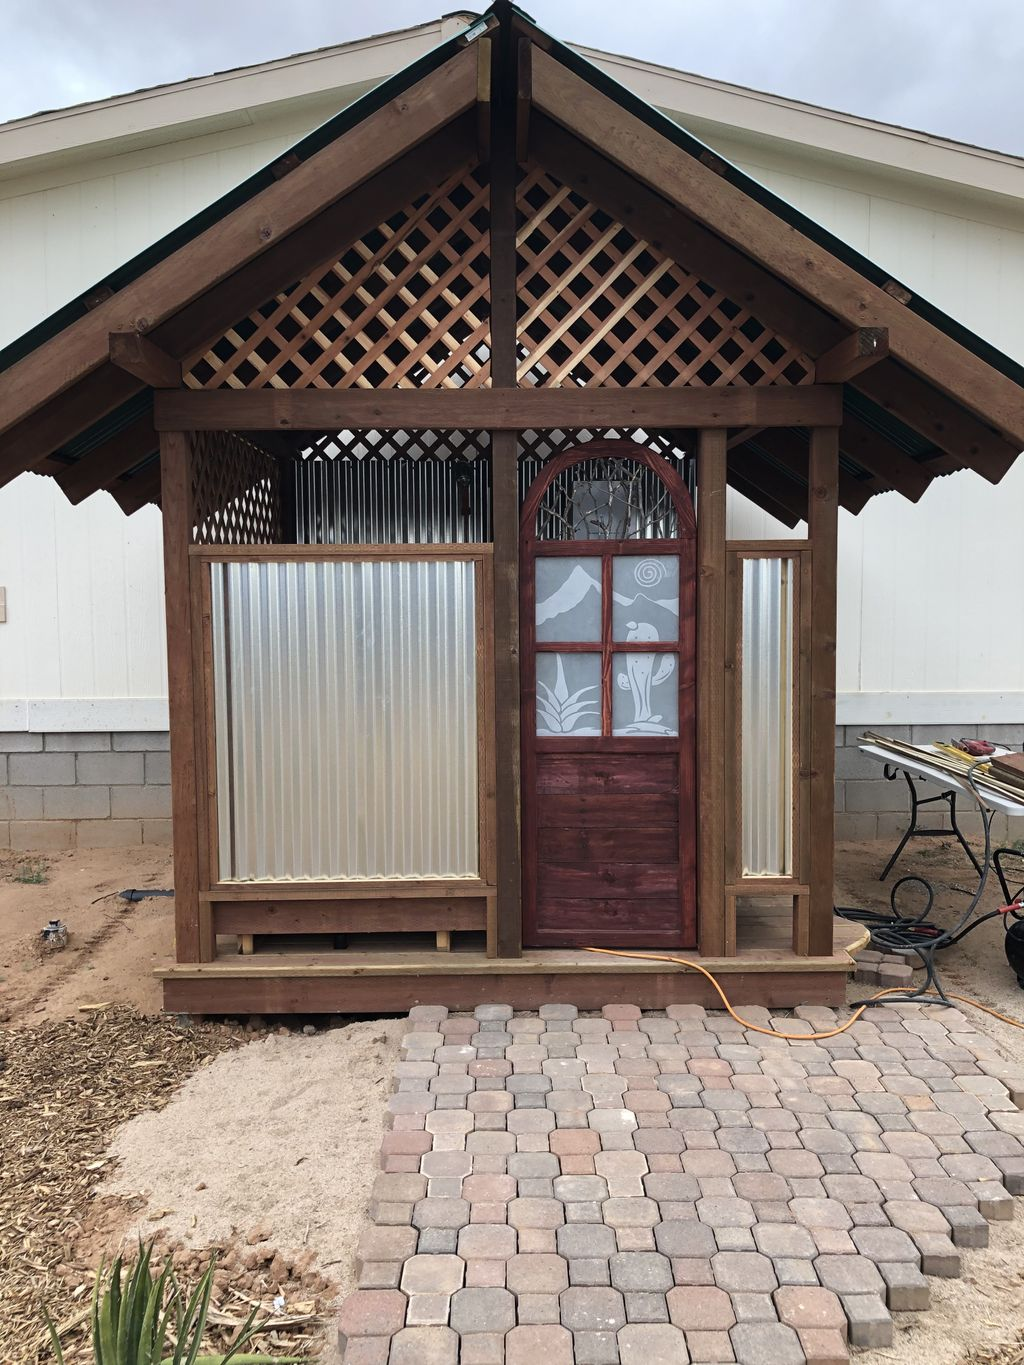 Just finished building this outdoor bathhouse